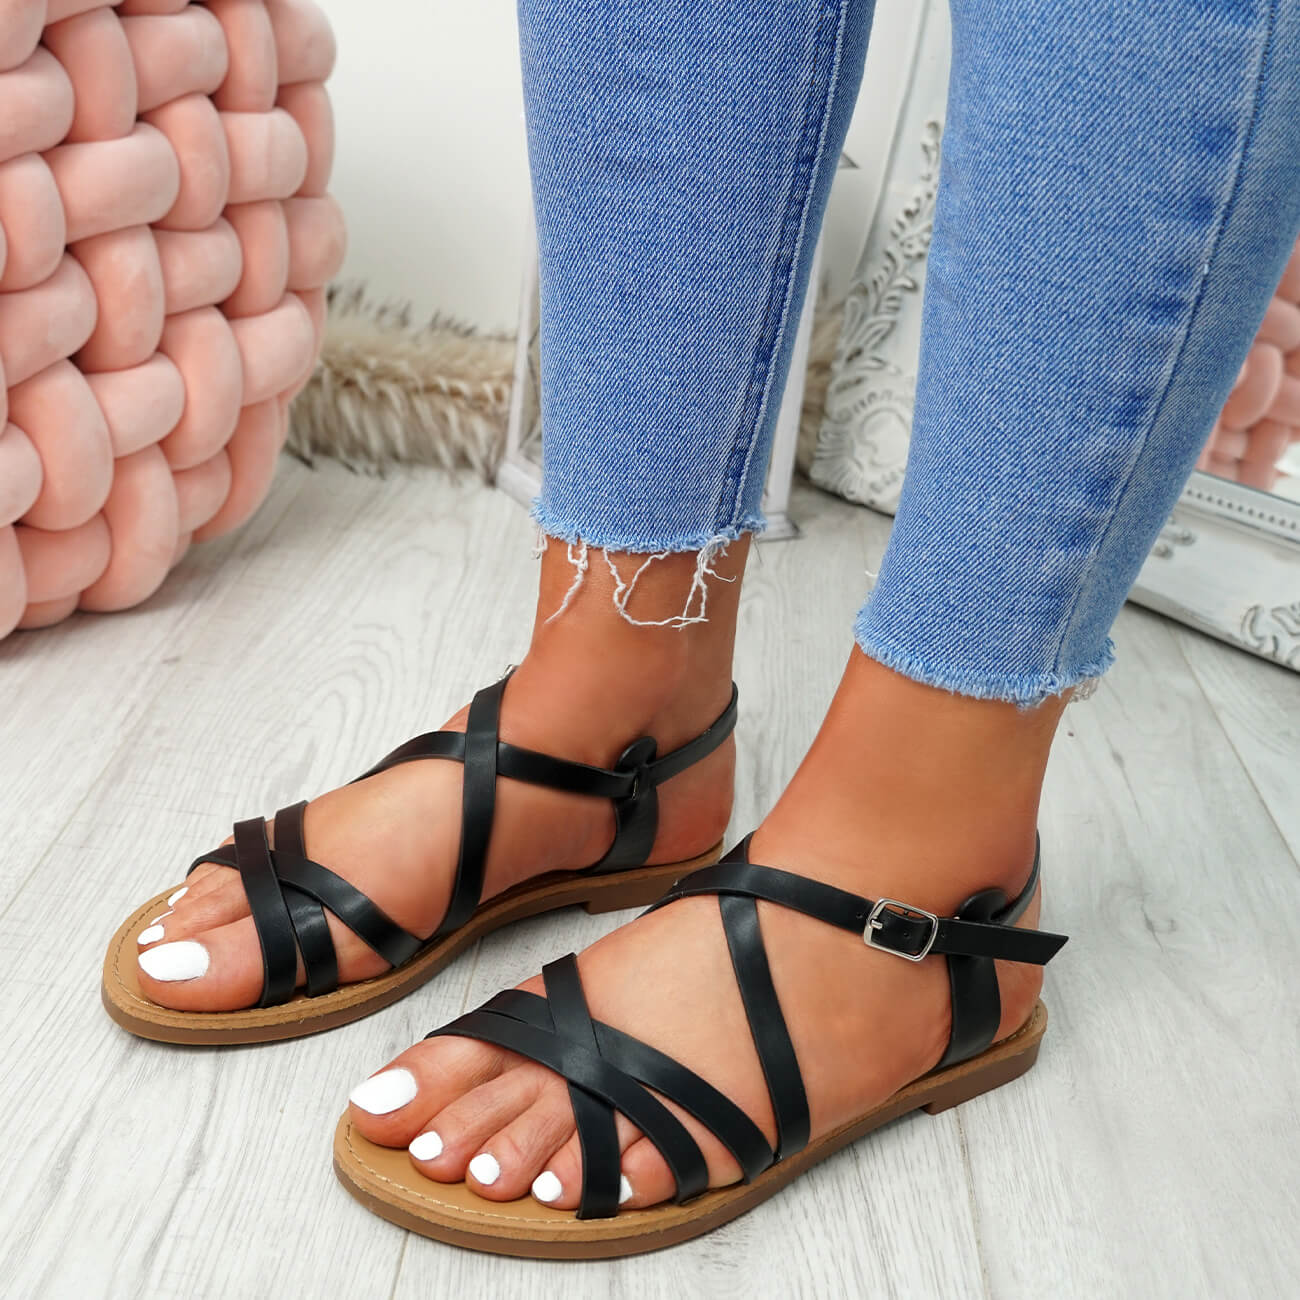 WOMENS-LADIES-ANKLE-STRAP-PEEP-TOE-BUCKLE-FLAT-SANDALS-SUMMER-CASUAL-SHOES thumbnail 8